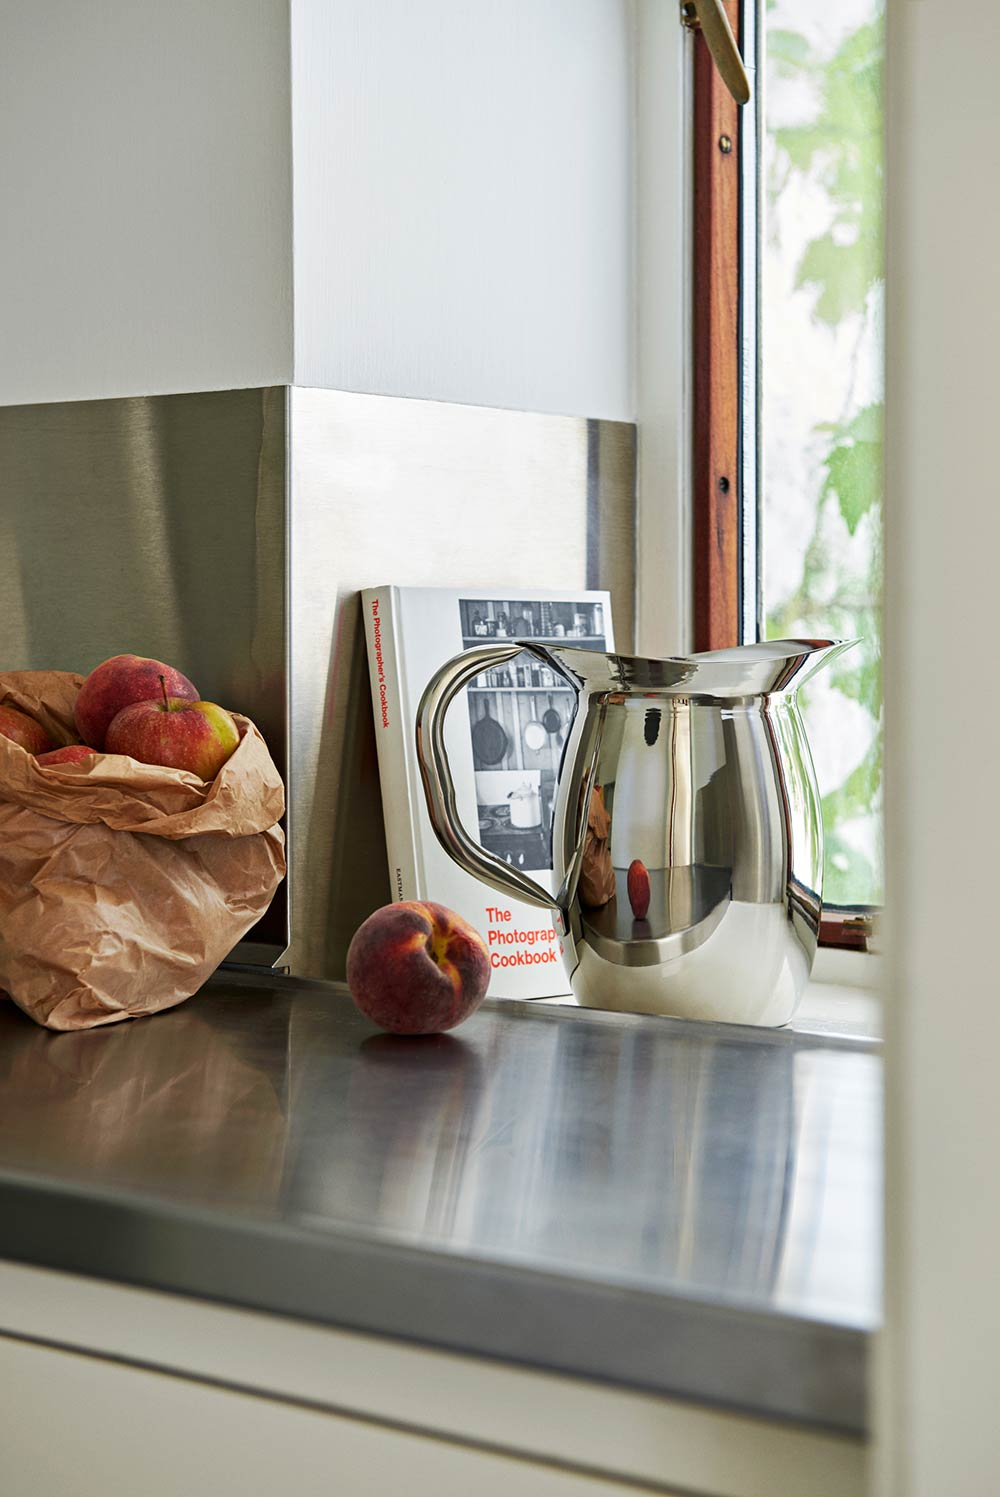 HAY Kitchen Market Is Exclusively Available At MoMA Design Store Through  The End Of The Year.